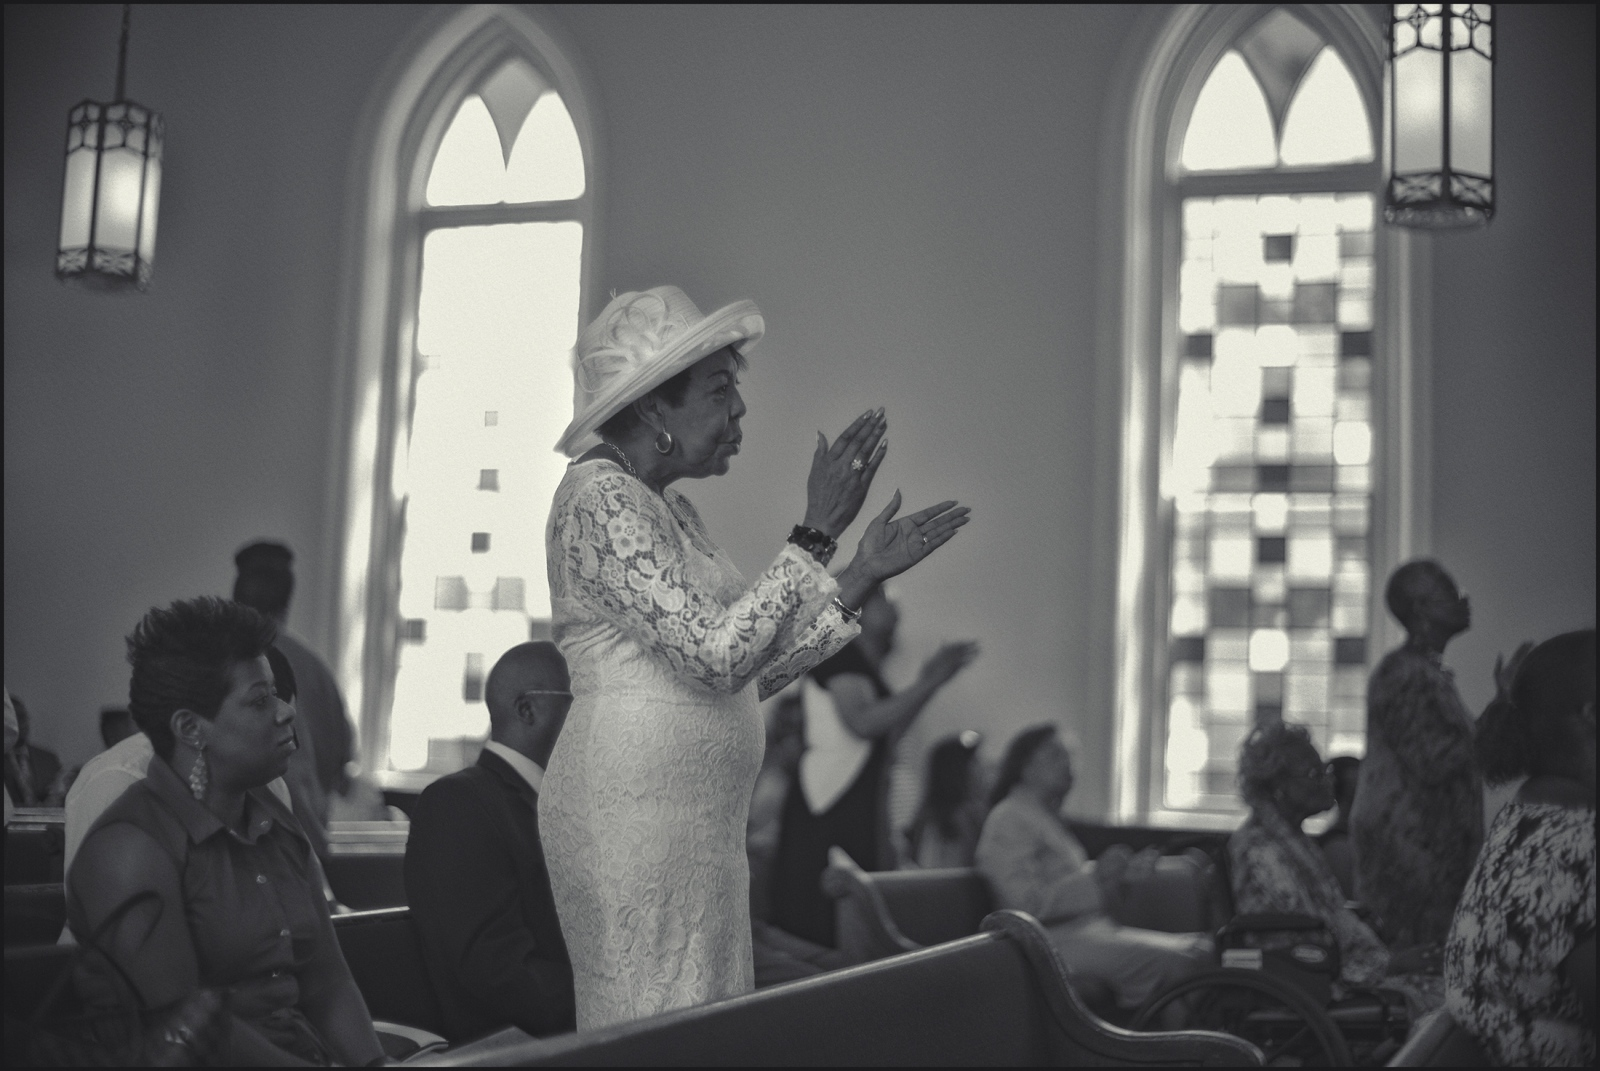 Sunday service Dexter Avenue King Baptist Church, ground zero for the USA Civil Rights Movement in the 1960s. Montgomery, AL. 2016.